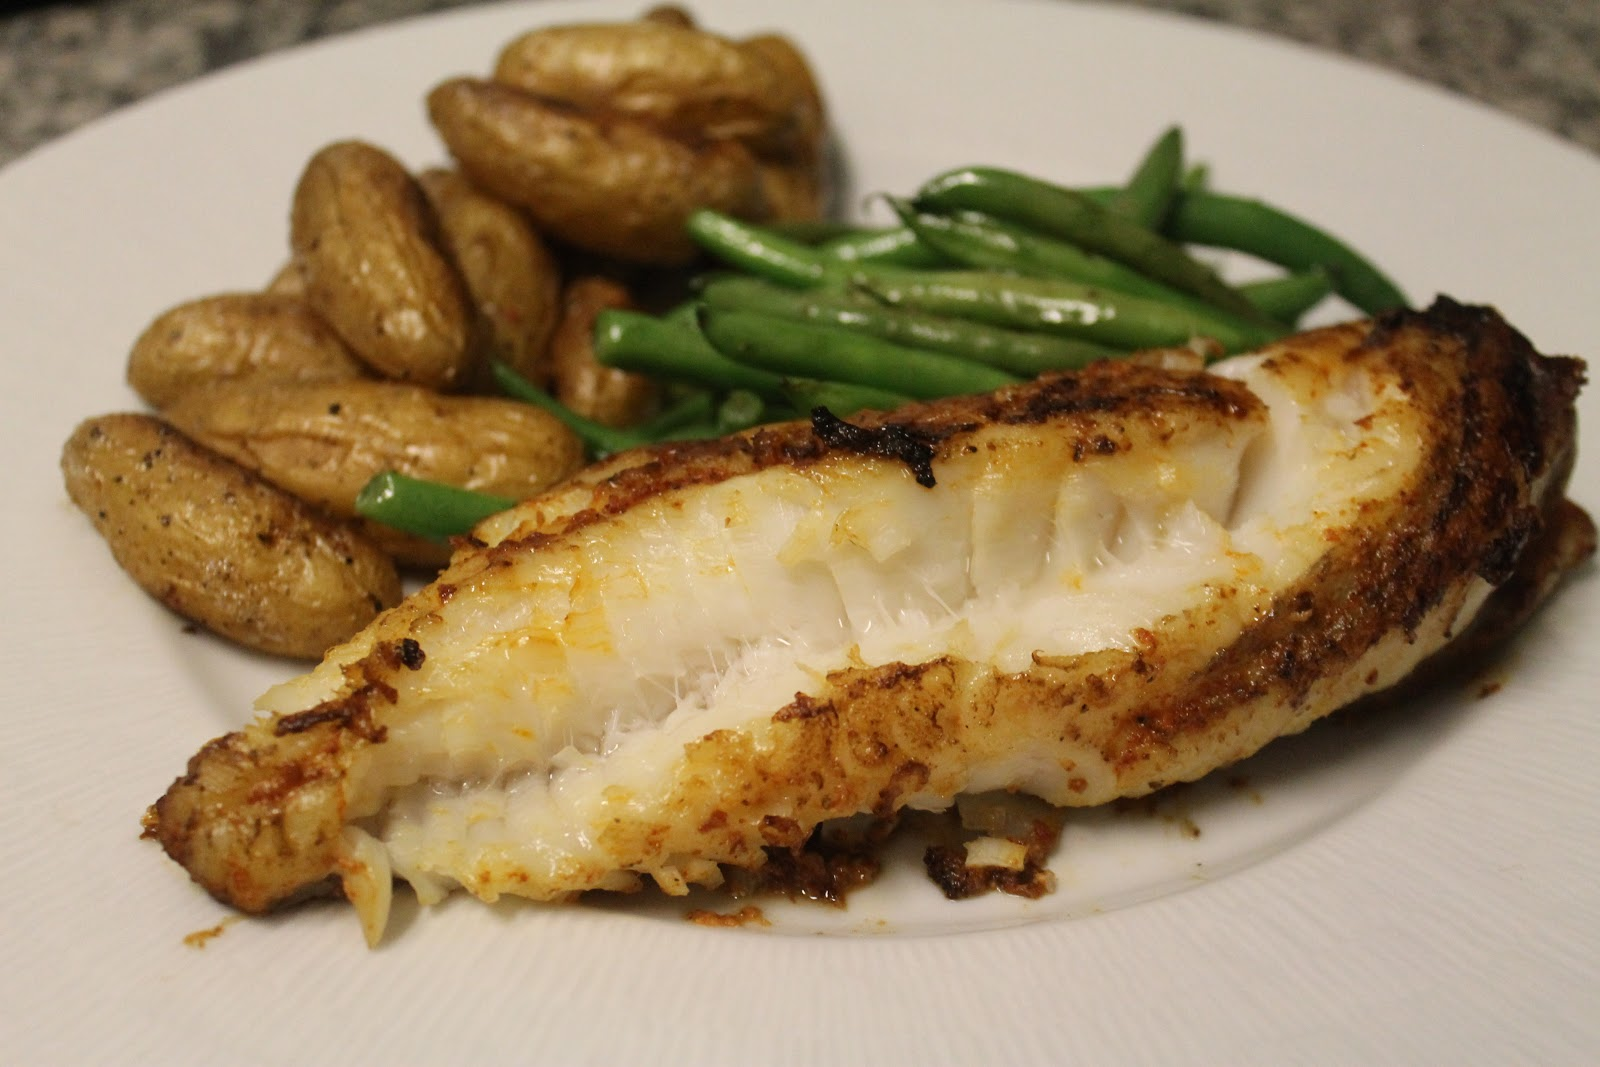 Matt Likes to Cook - Matt Likes to Eat: Roasted Monkfish! for Monk Fish Cooked  56mzq